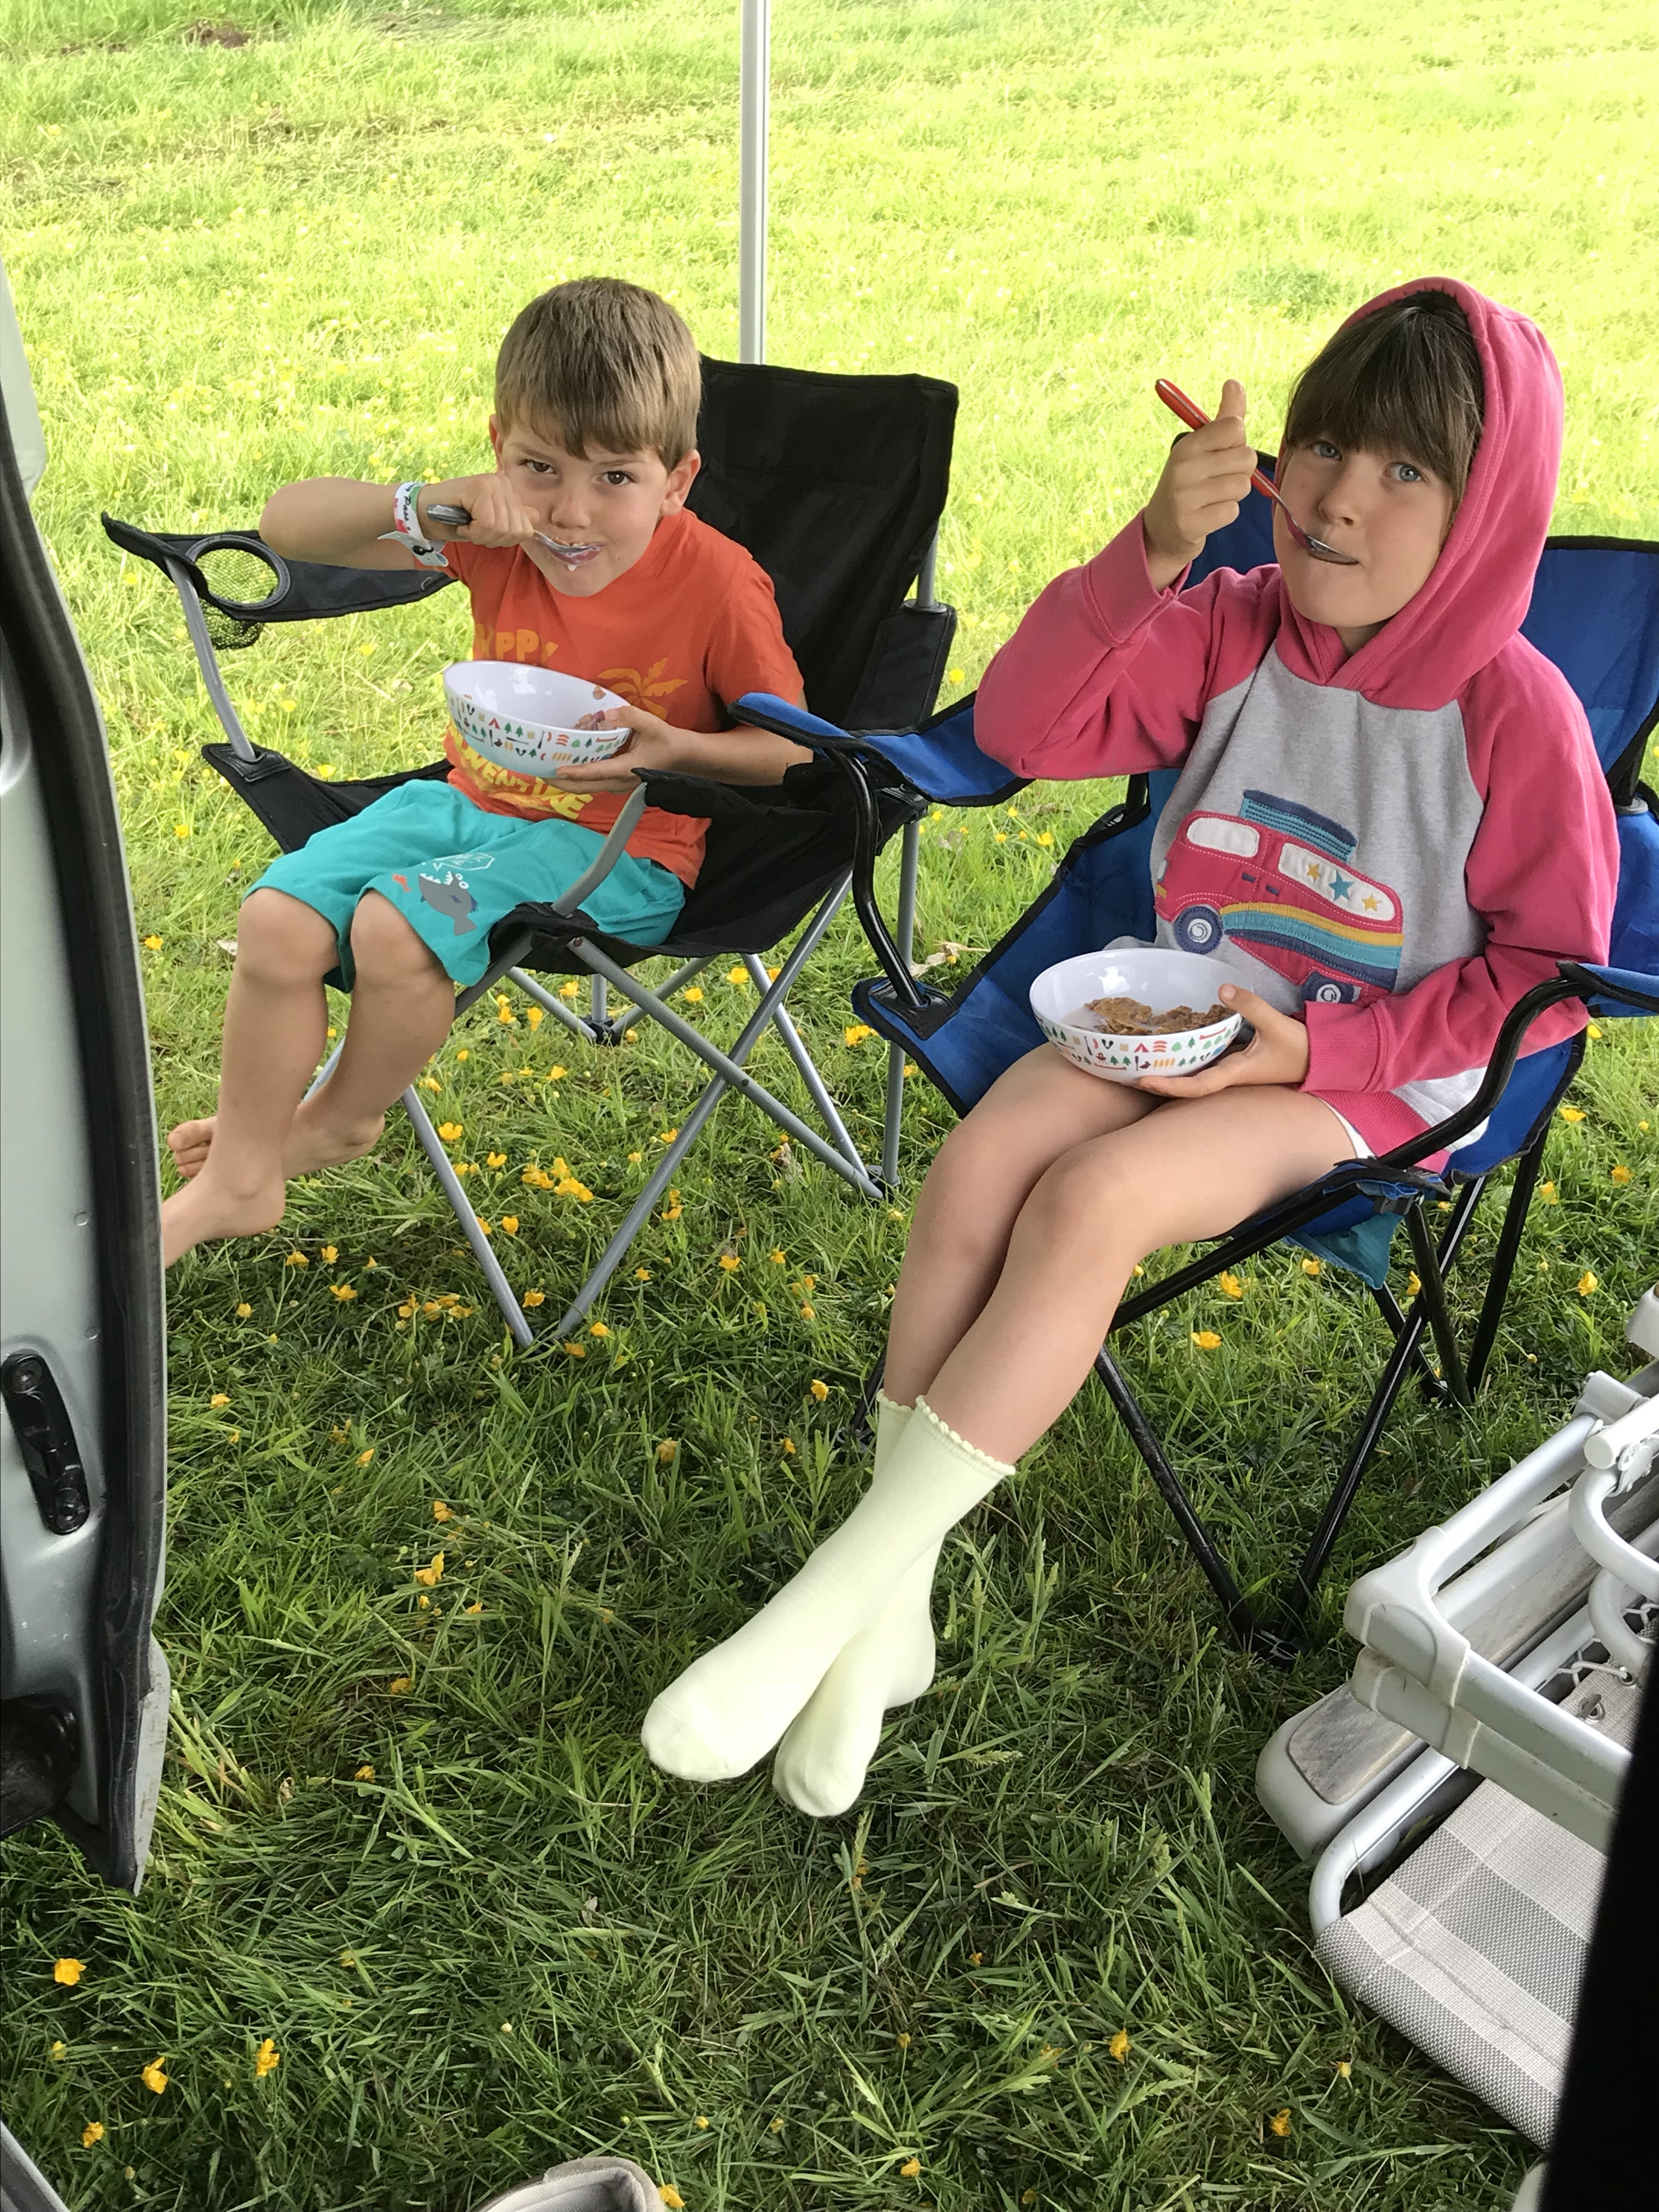 Both of my children sitting in camping chairs outside Wilma our campervan, eating bowls of cereal. They both have spoons in their mouths mid bite, and are looking at the camera. Keep siblings well fed to avoid fighting!